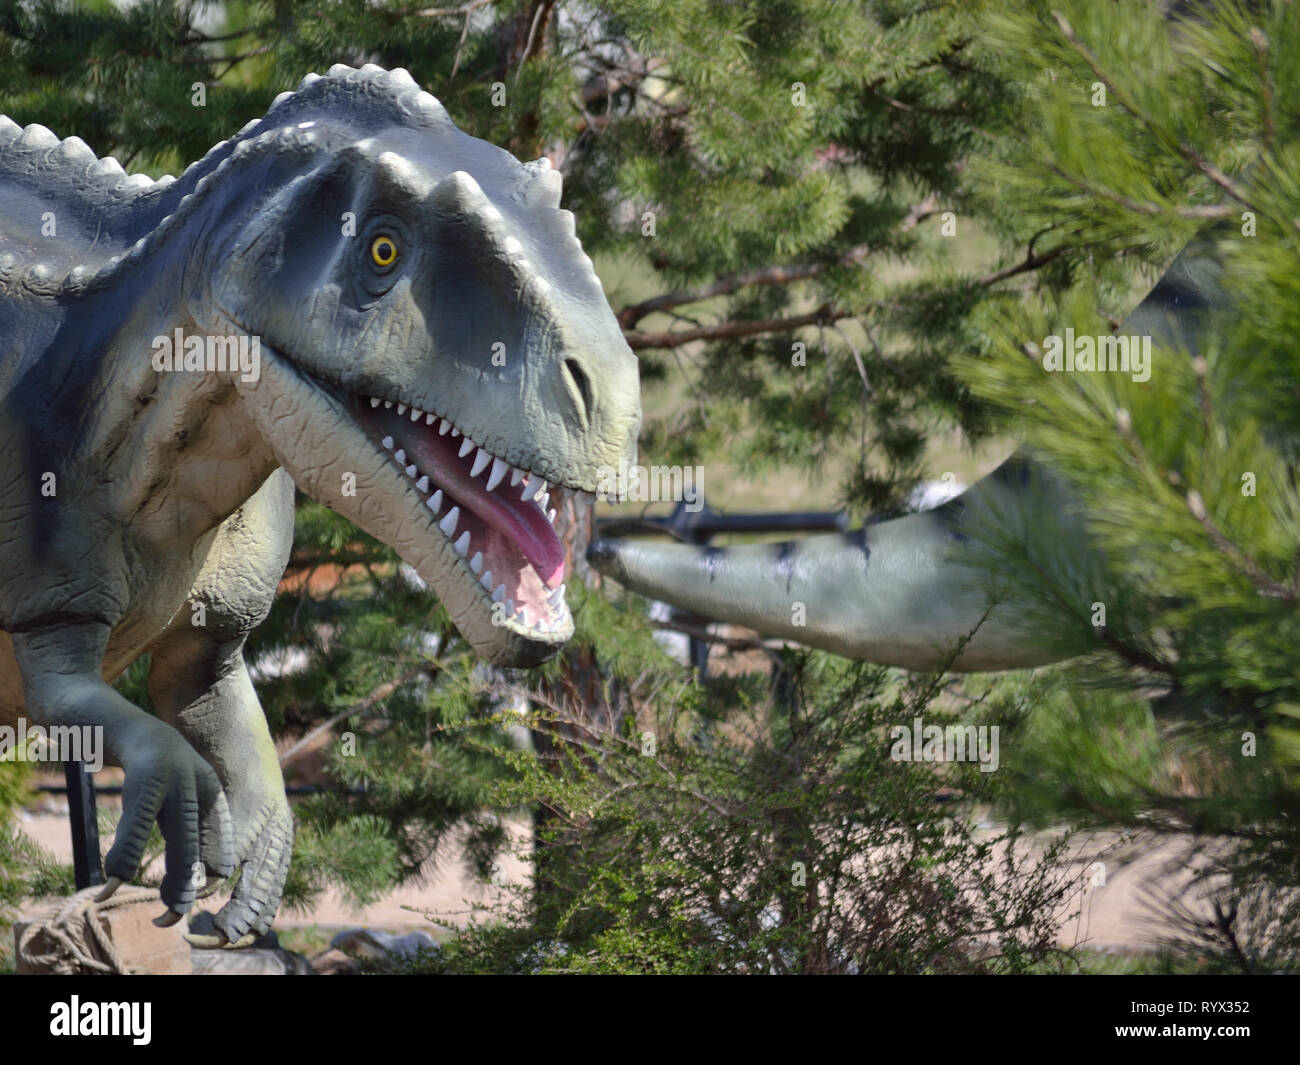 Statue, dinosaur wants to bite the tail of another dinosaur. Dino park Dinosville. Natural history center of Serbia. - Stock Image